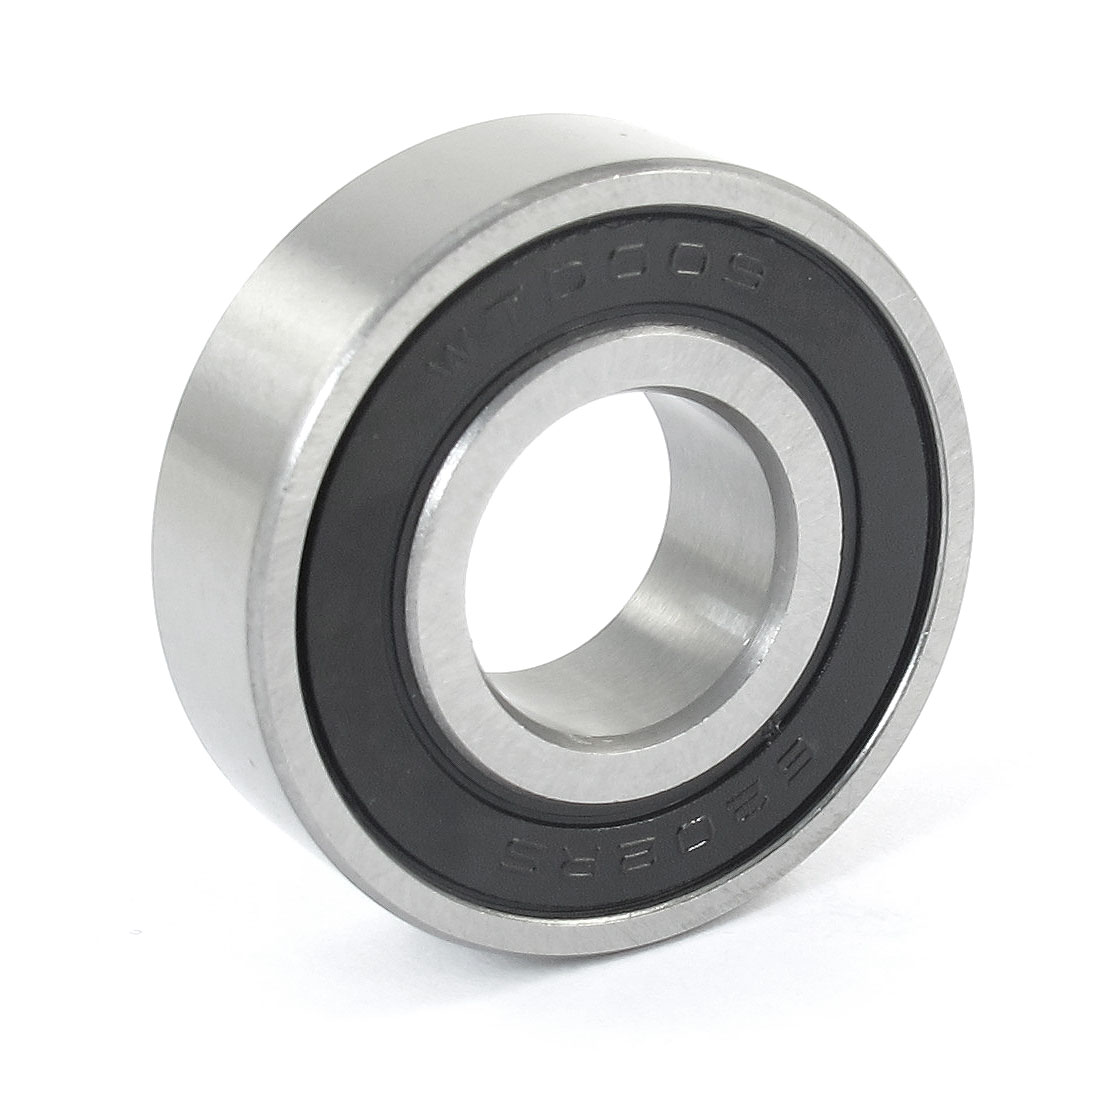 35mm x 15mm x 11mm Carbon Steel 6202RS Shielded Deep Groove Ball Bearing Black